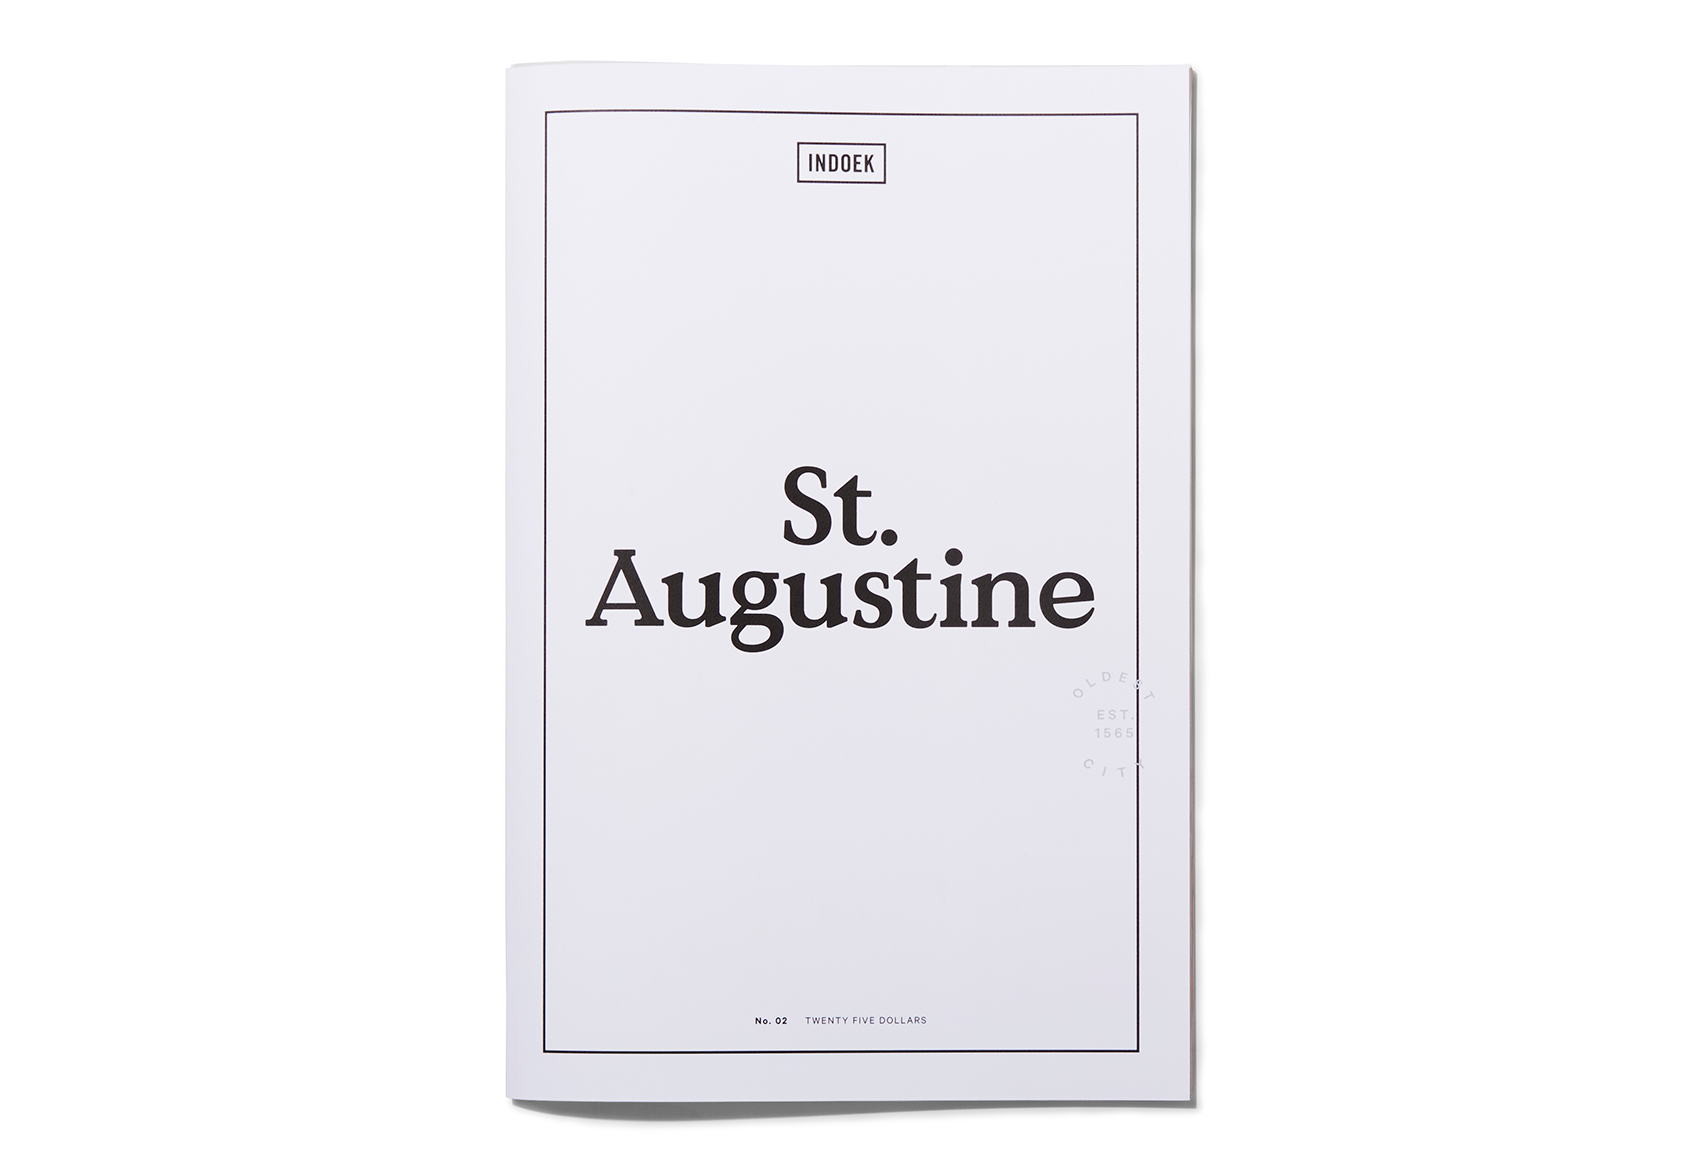 Indoek-St.Augustine-Issue-02-1.png